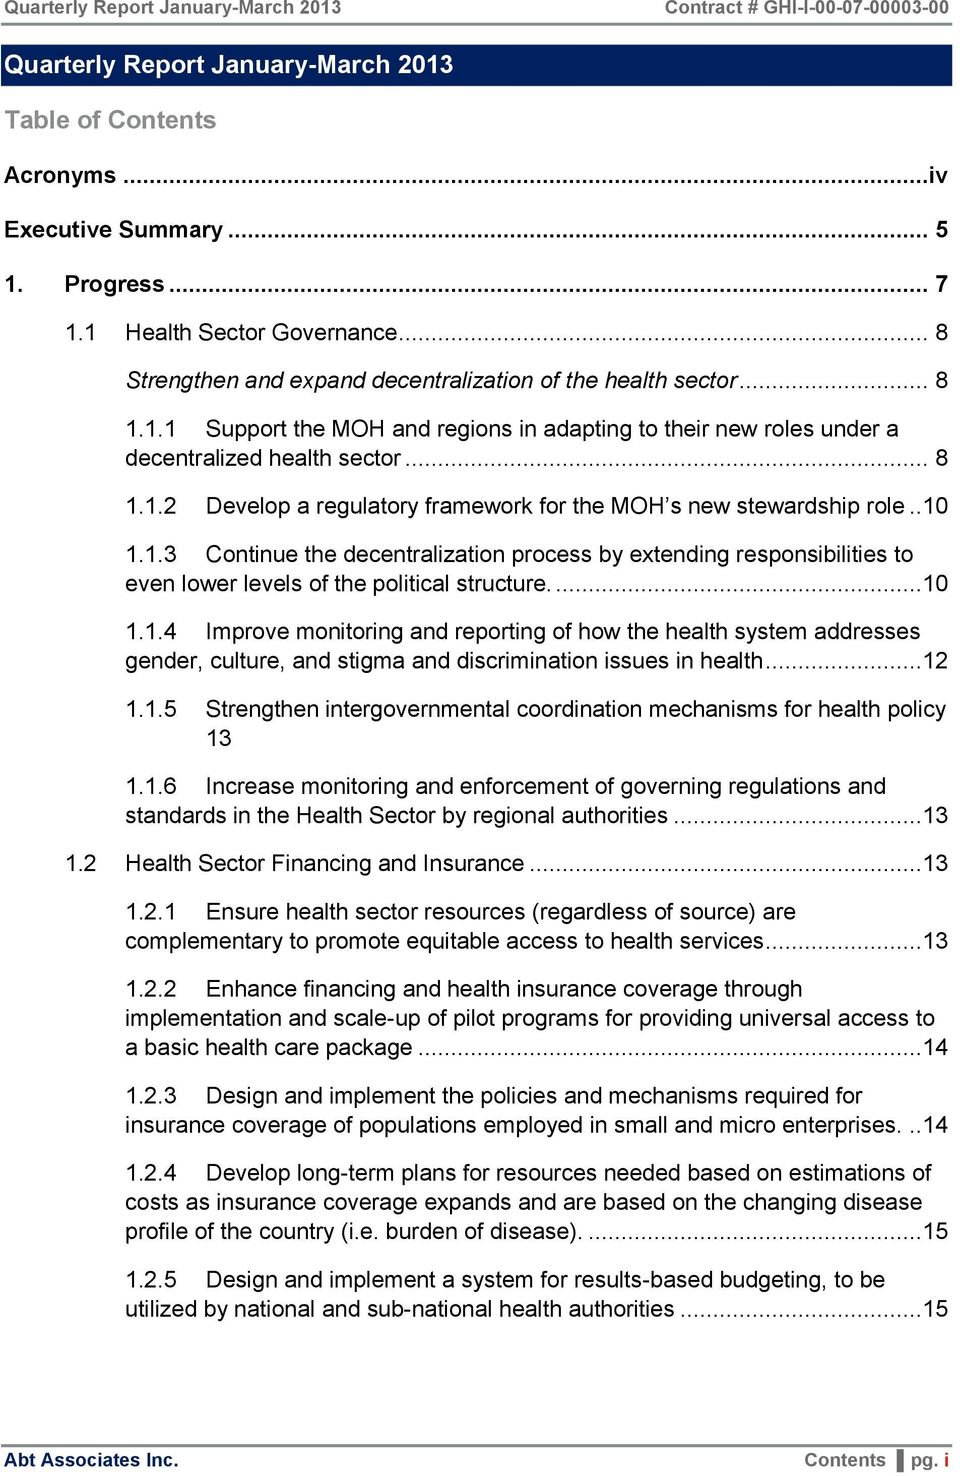 ...10 1.1.4 Improve monitoring and reporting of how the health system addresses gender, culture, and stigma and discrimination issues in health...12 1.1.5 Strengthen intergovernmental coordination mechanisms for health policy 13 1.